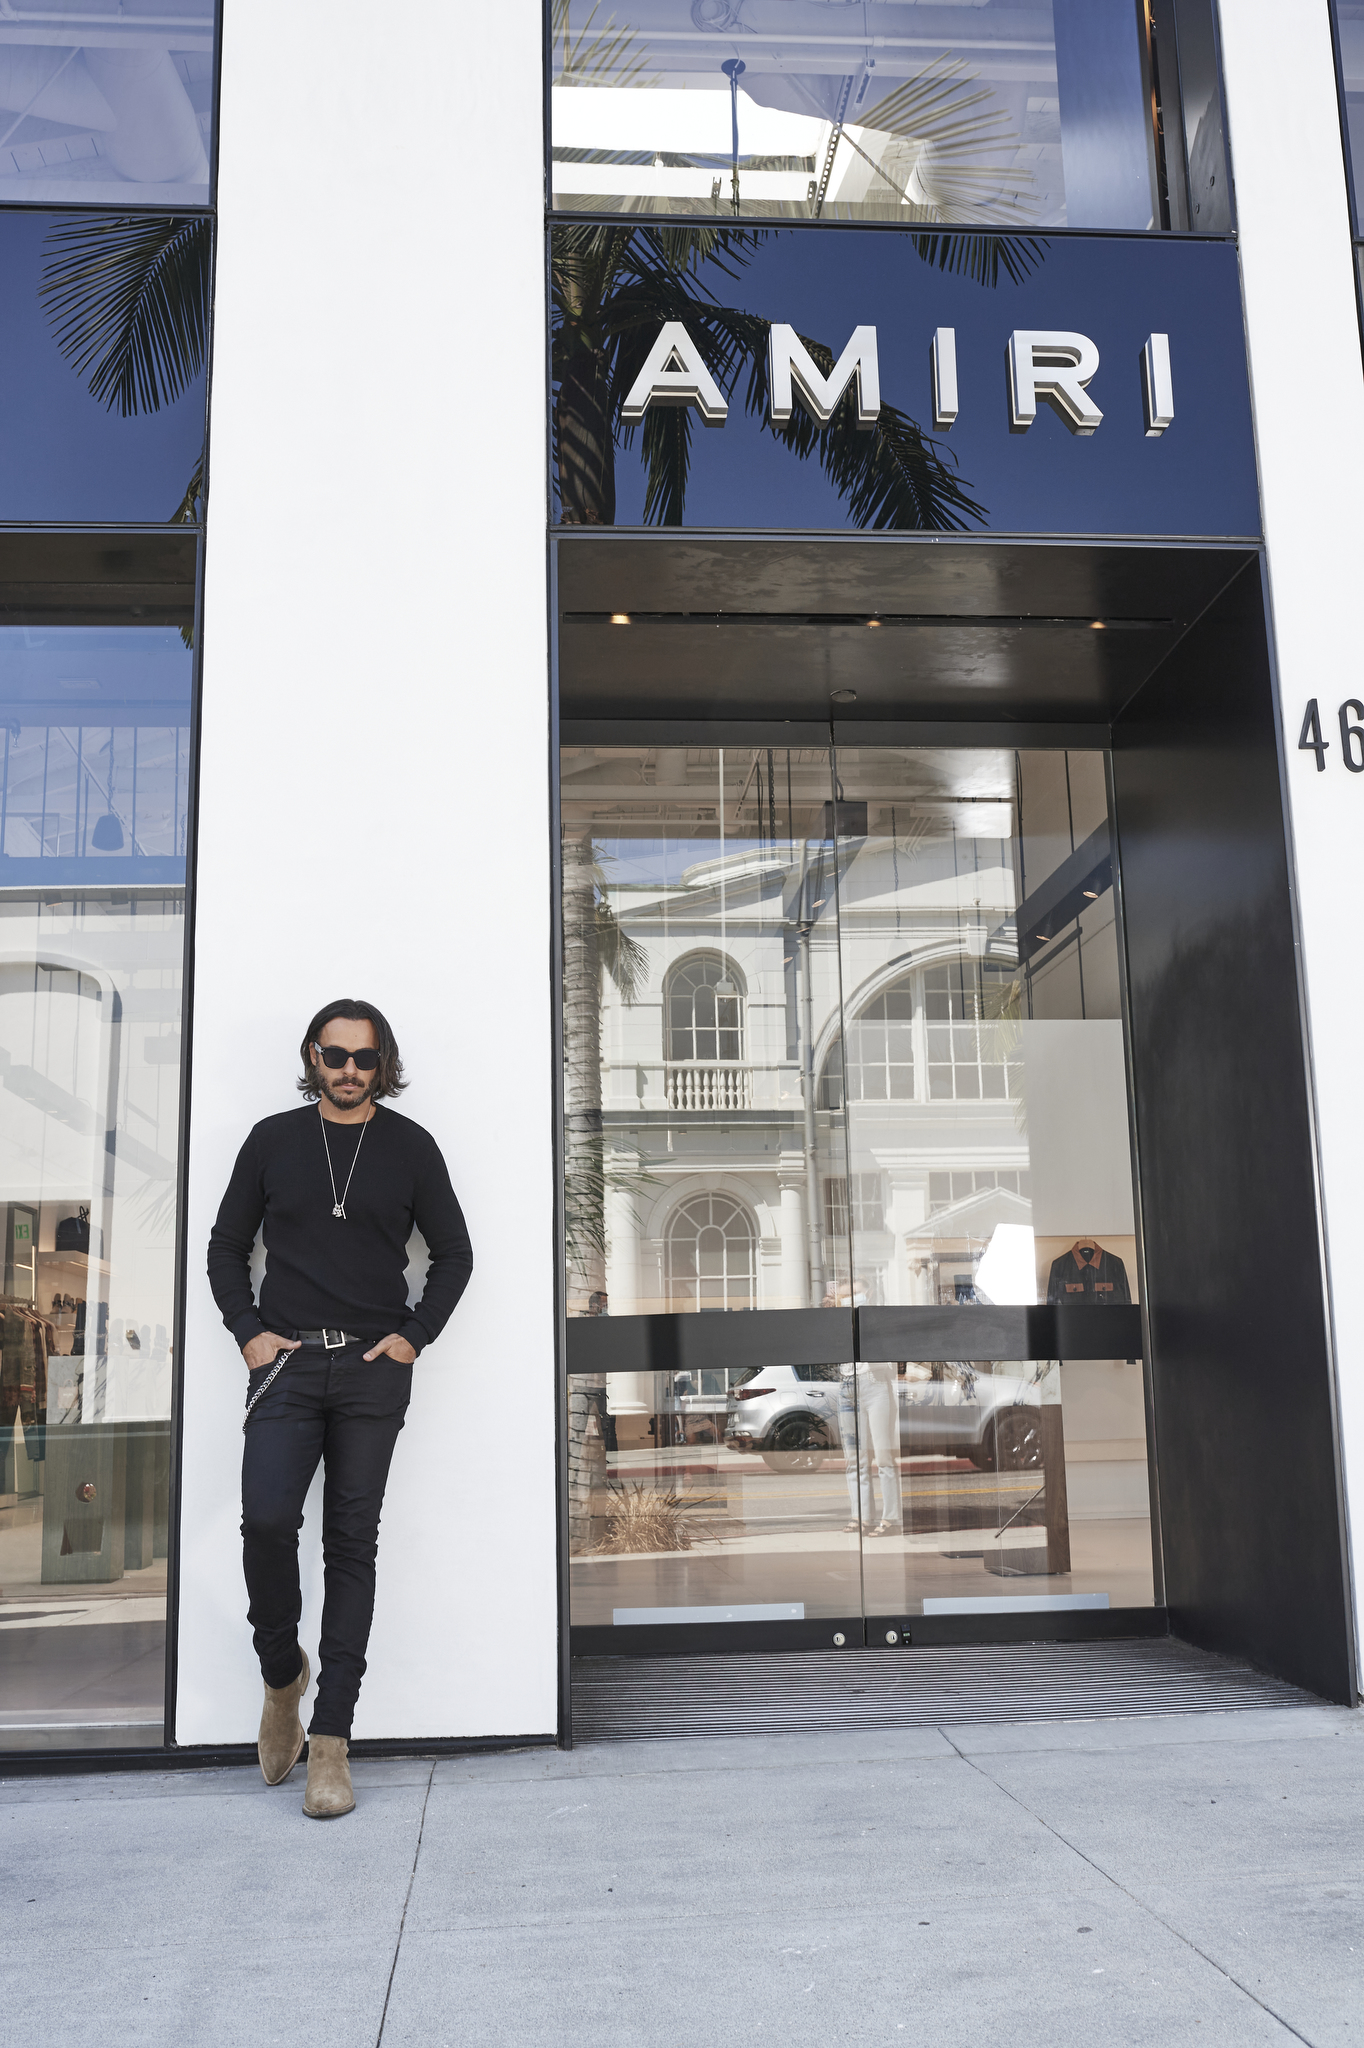 Mike Amiri in front of Amiri's flagship on Rodeo Drive.